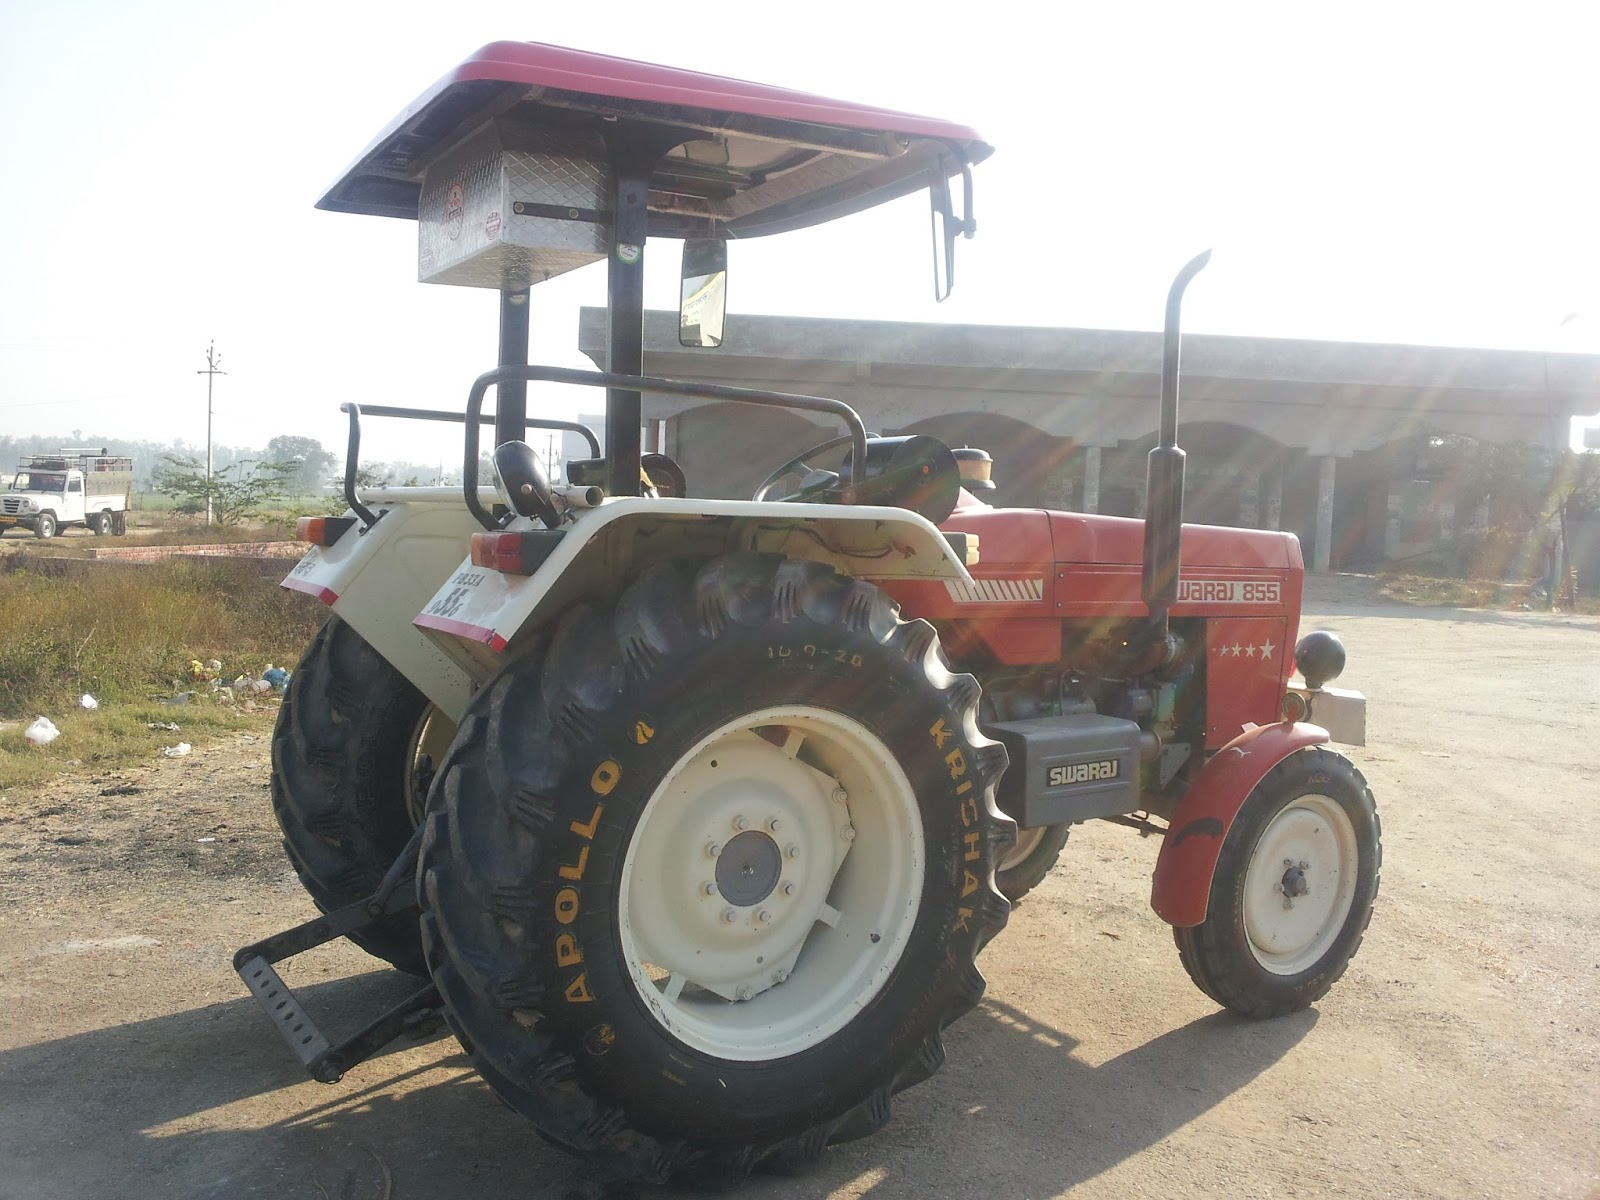 Tractor Side Mirrors : Bablu kalsi engg works all tractor accessories swaraj